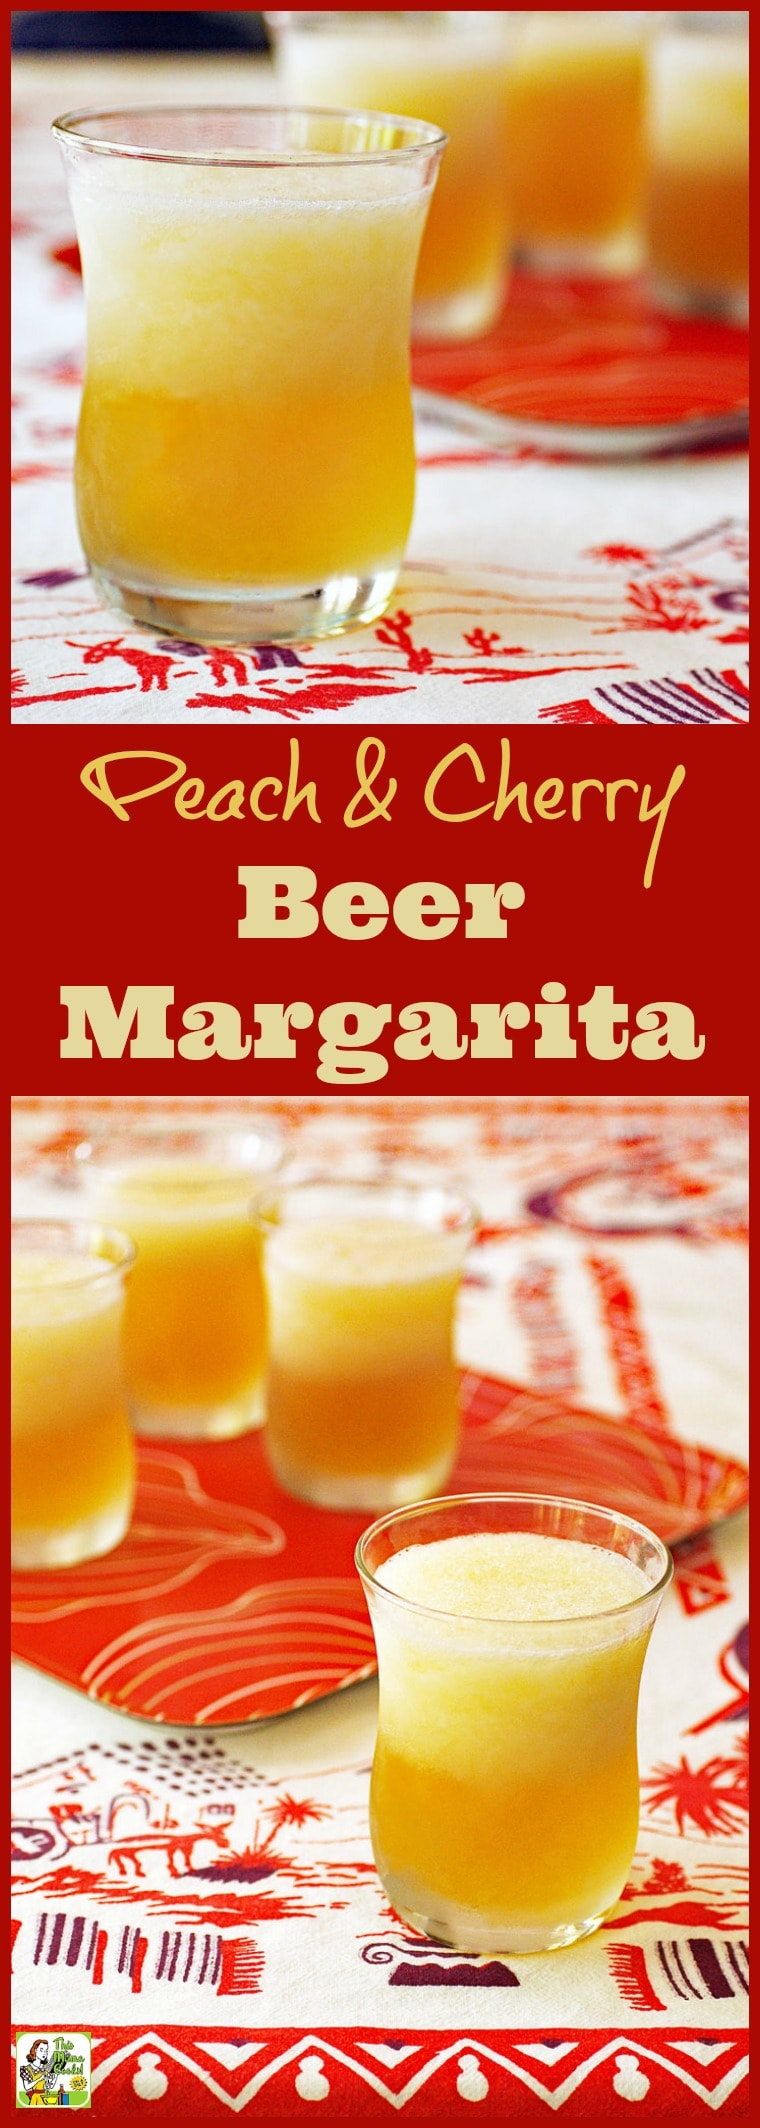 Best ever margarita recipe: Peach & Cherry Beer Margarita. Make it with diet natural black cherry soda, 100% frozen fruit concentrate, and gluten free beer. Click to get this easy beer margarita cocktail recipe. Perfect for Cinco de Mayo parties or Mother\'s Day lunch or brunch. #recipes #easy #recipeoftheday #glutenfree #easyrecipes #margaritas, #margarita, #drinks, #drinking, #cocktails, #cocktail, #beer